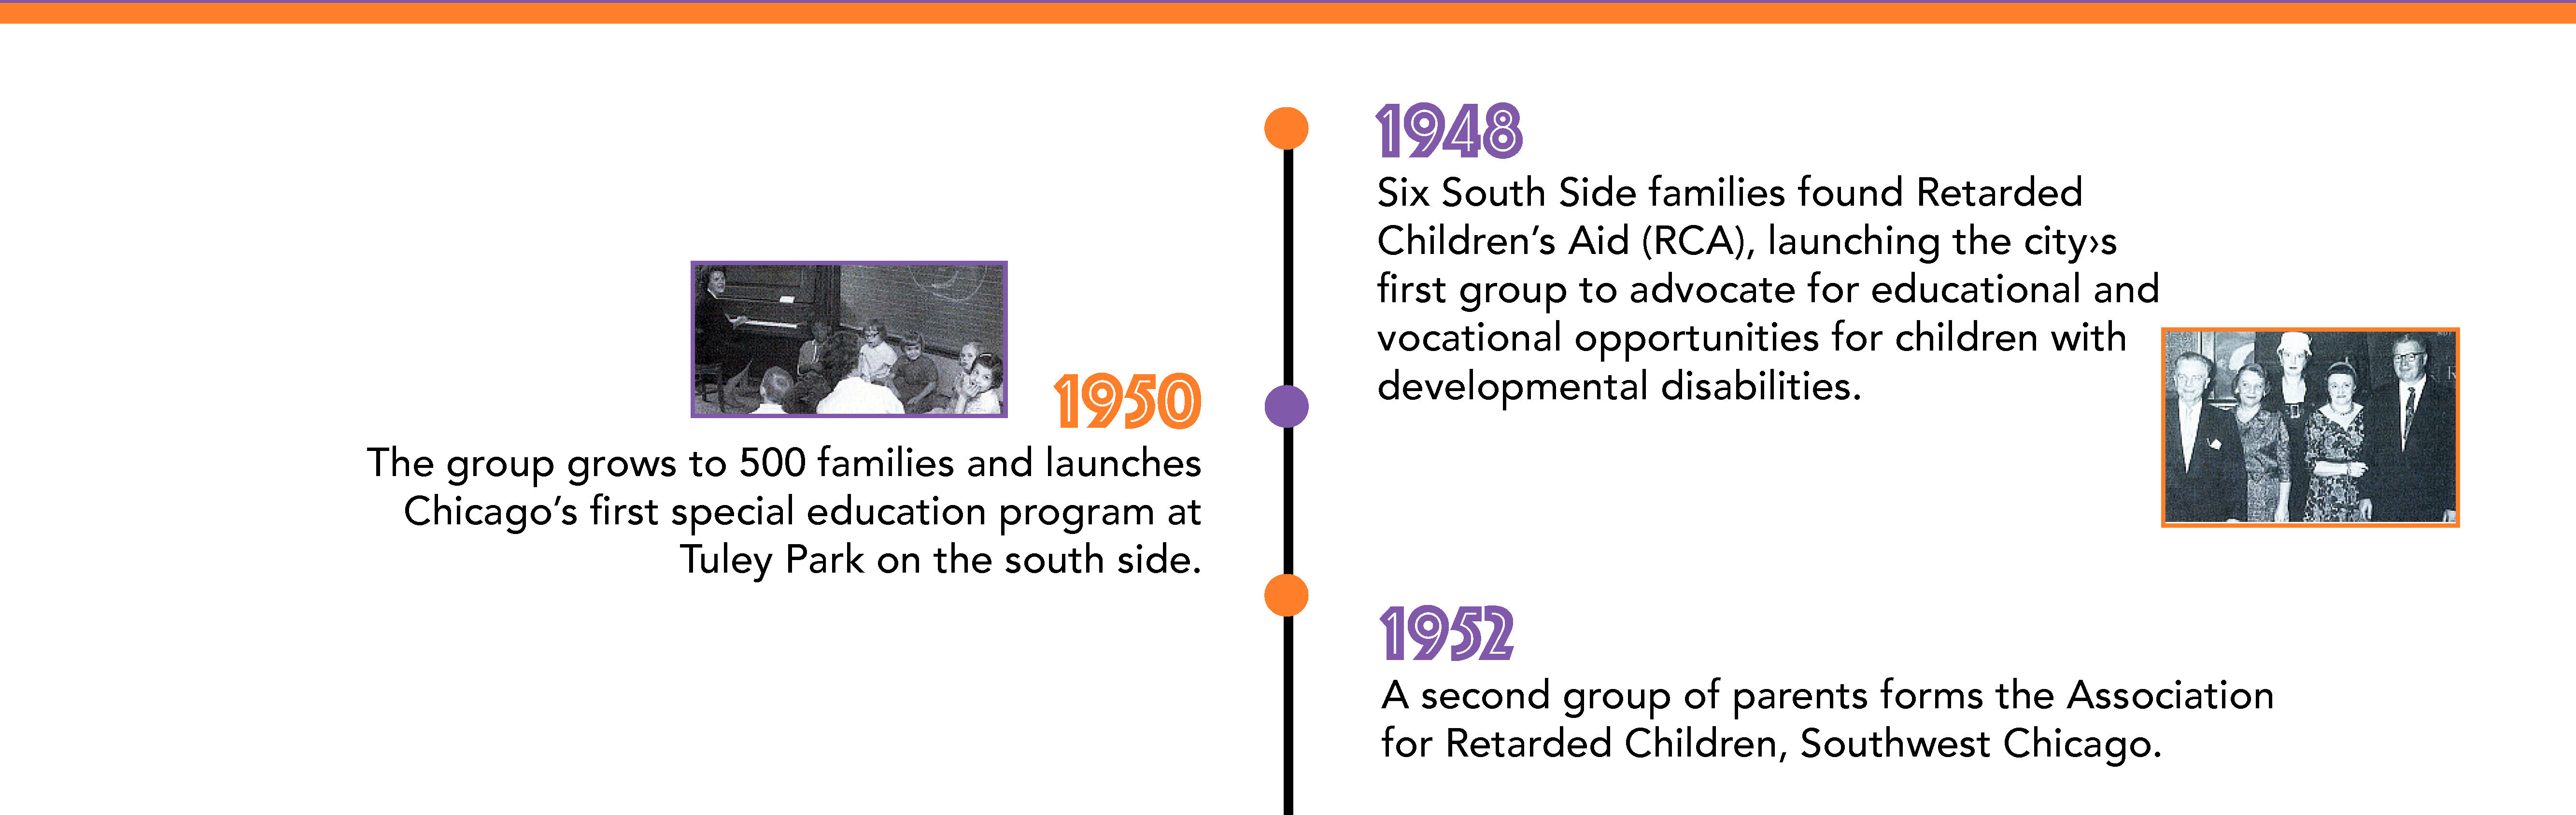 In 1948, six South Side families found Retarded Children's Aid (RCA), launching the city›s first group to advocate for educational and vocational opportunities for children with developmental disabilities. By 1950, the group grows to 500 families and launches Chicago's first special education program at Tuley Park on the South Side. In 1952, a second group of parents forms the Association for Retarded Children, Southwest Chicago.